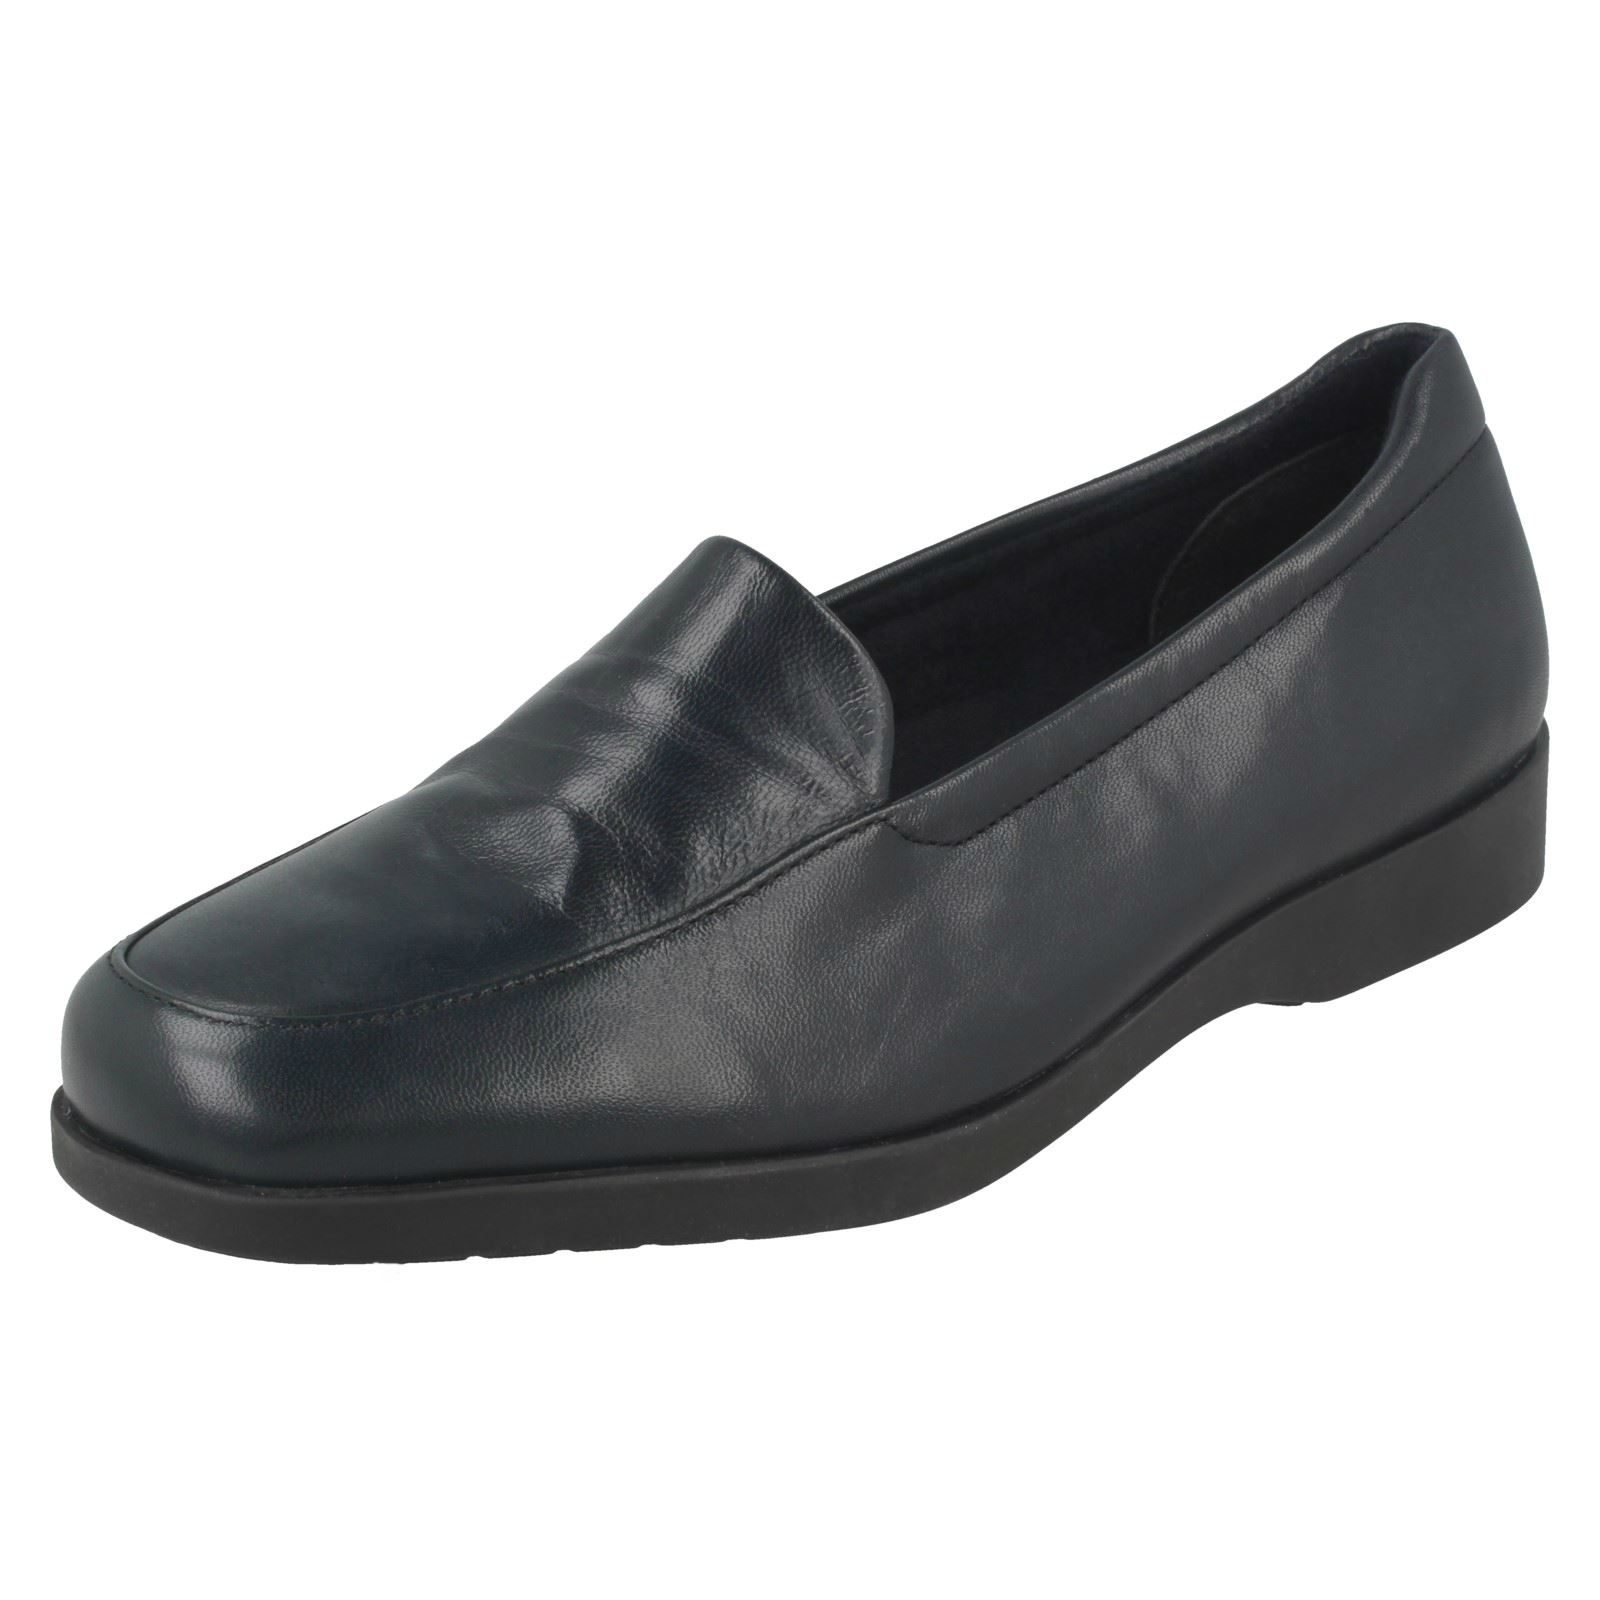 Ladies Clarks Flat Loafer Style Casual Slip On Leather Shoes Georgia